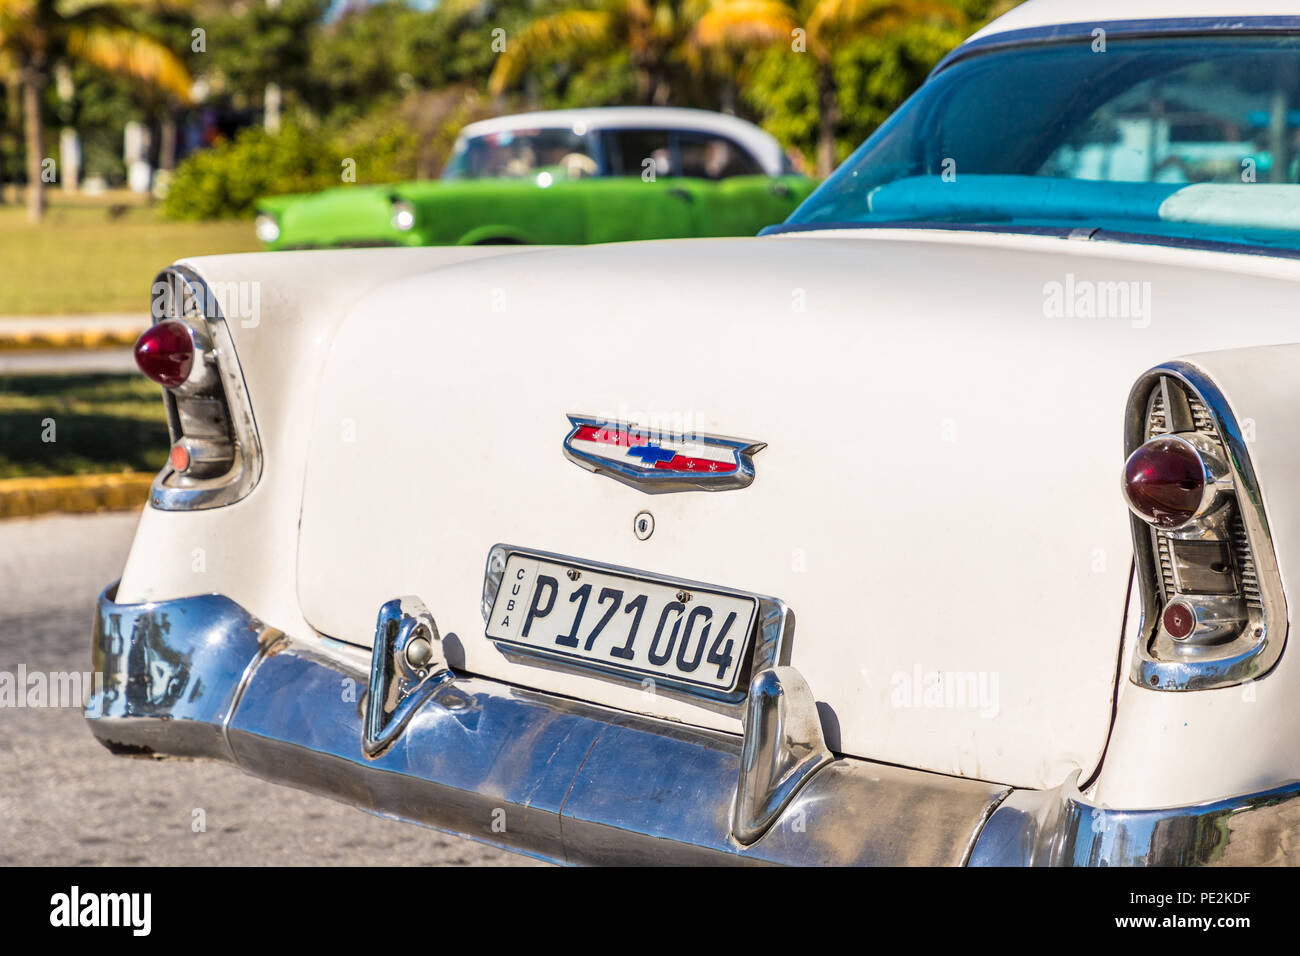 A typical view in Varadero in Cuba - Stock Image